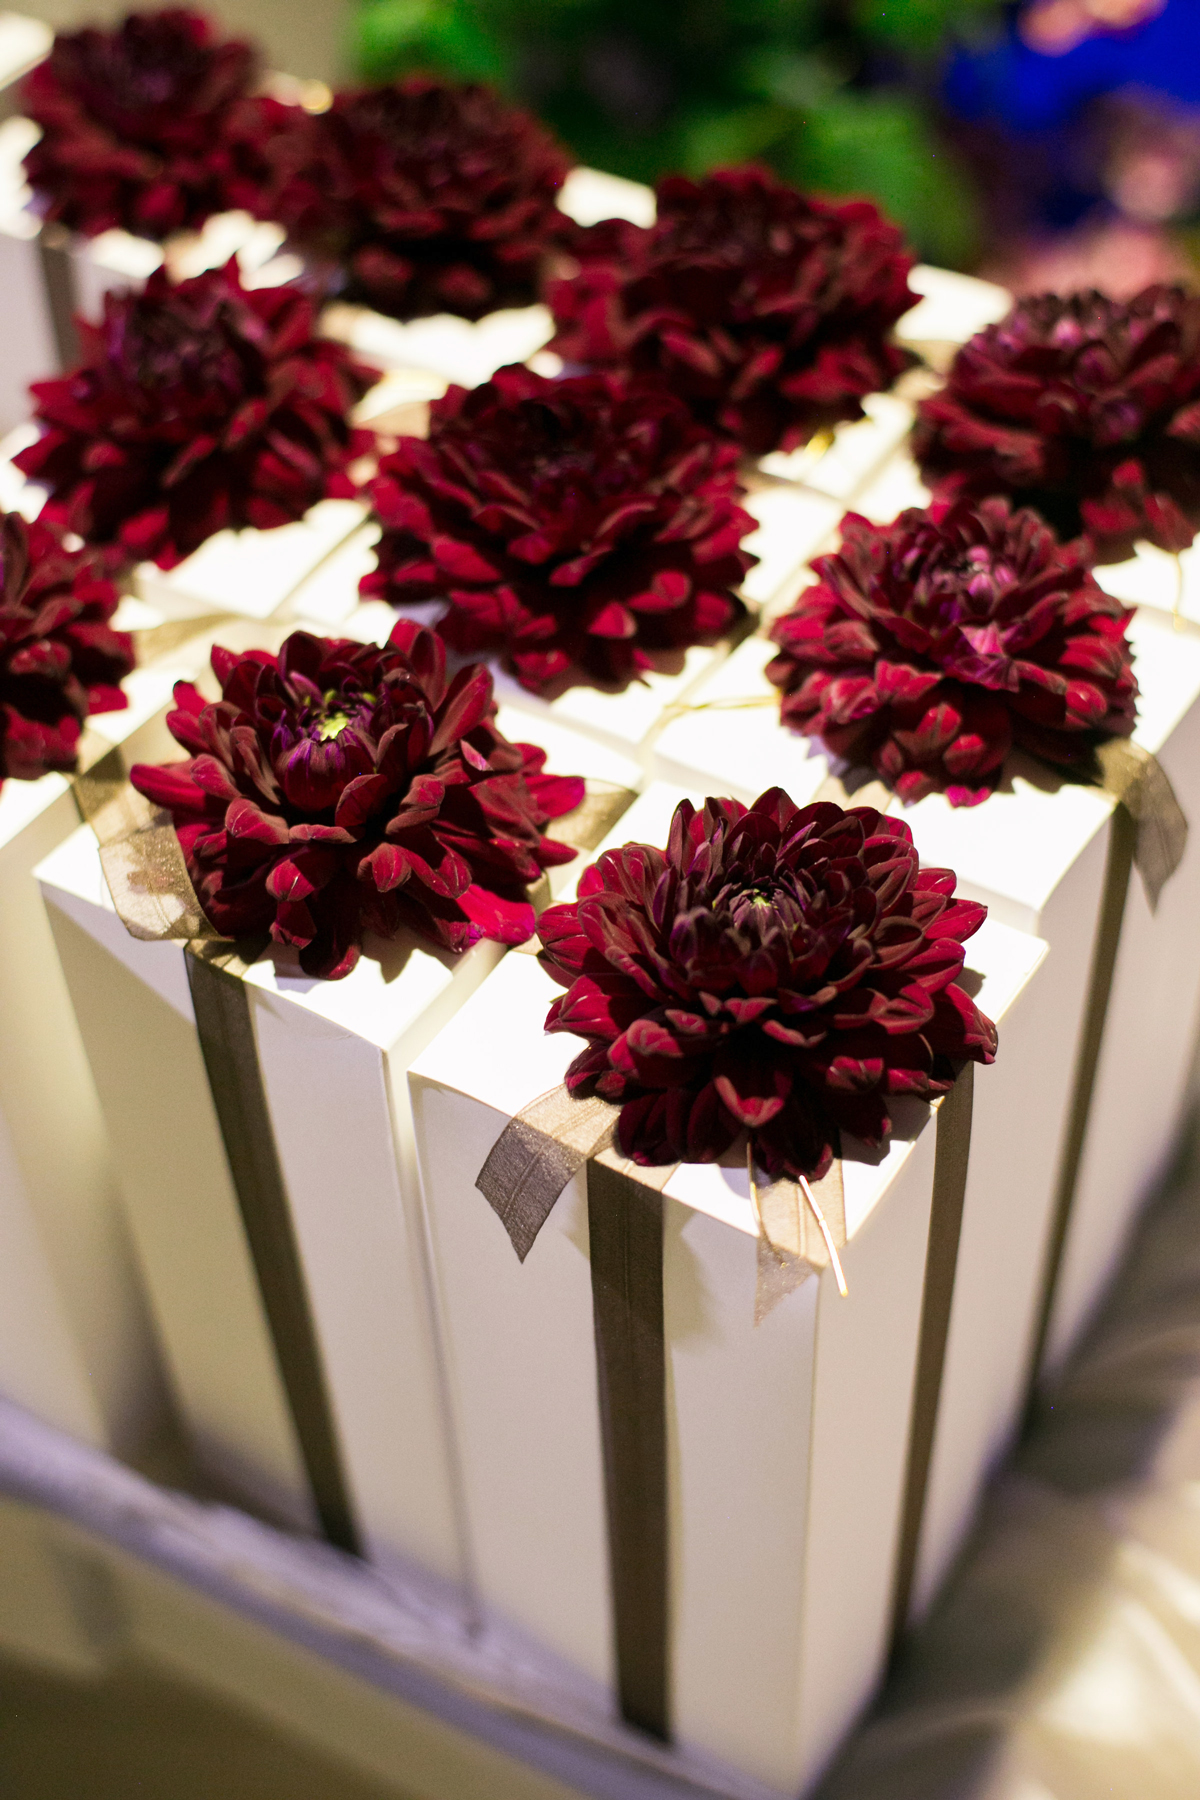 allie and joe italy wedding favors in white boxes embellished with red flowers